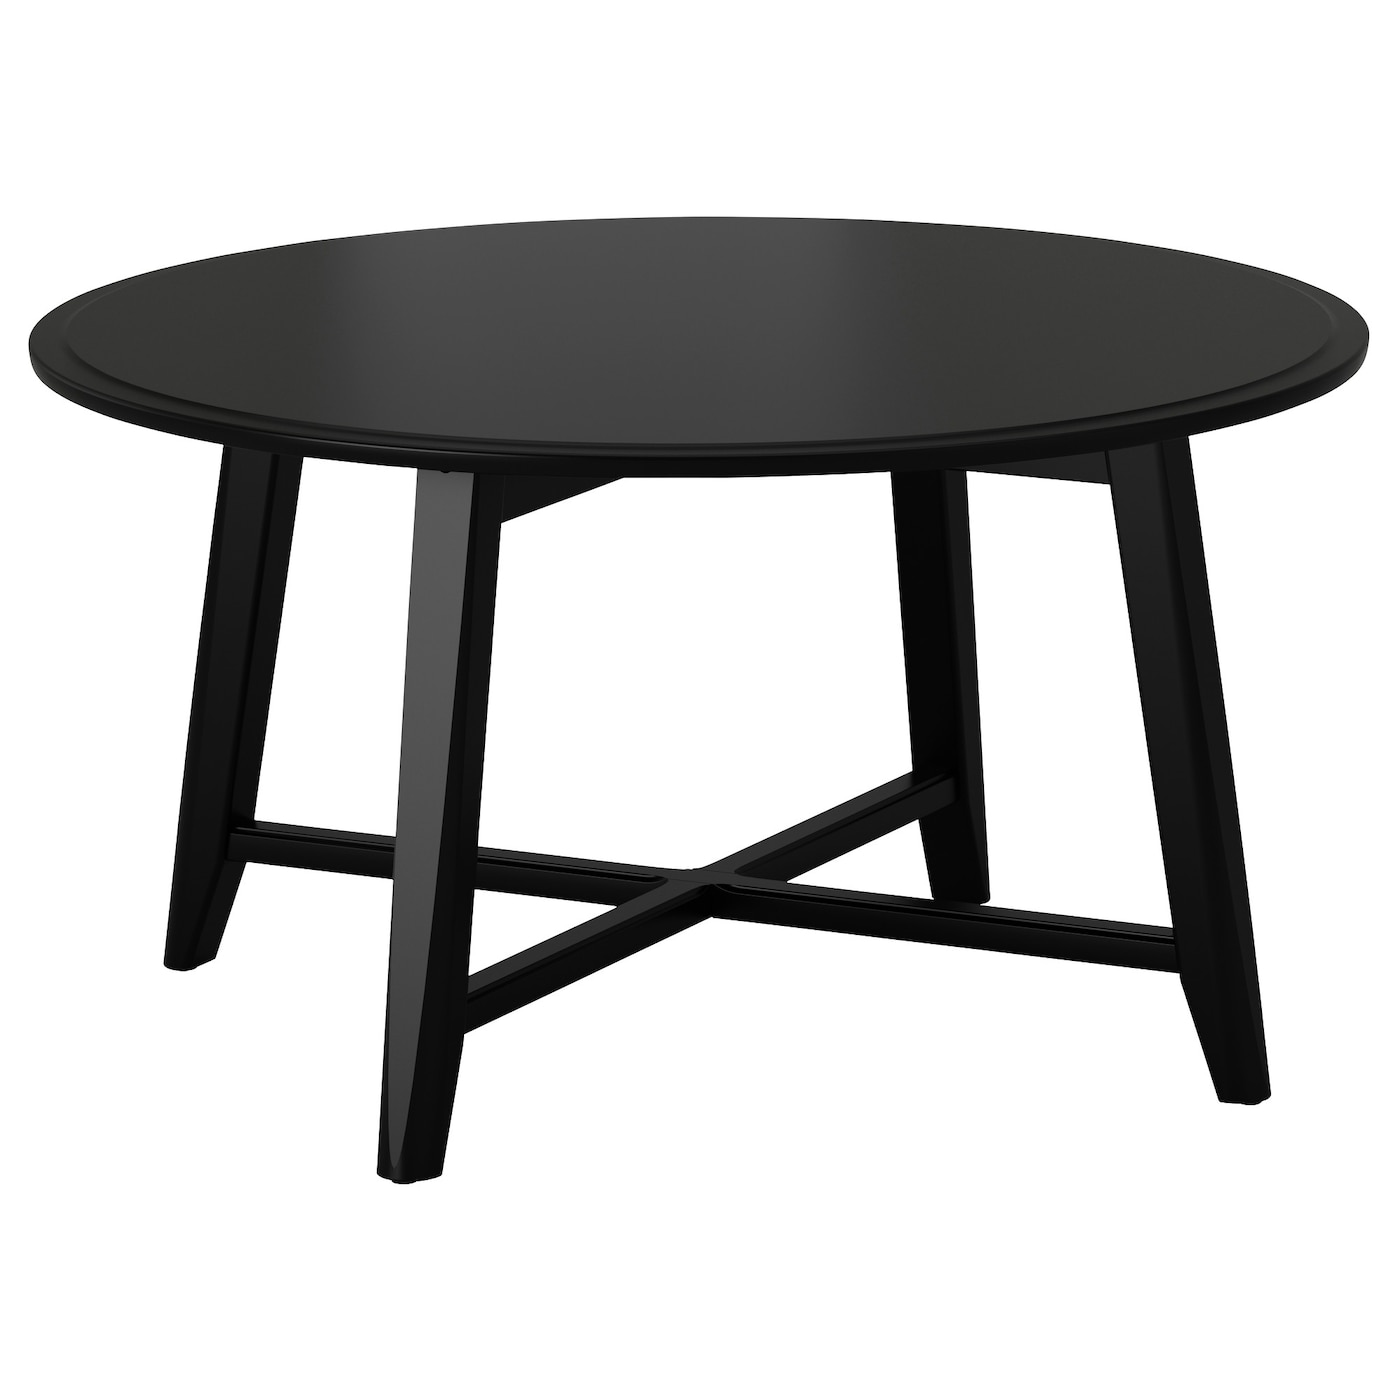 Kragsta coffee table black 90 cm ikea for Table de fusion ikea